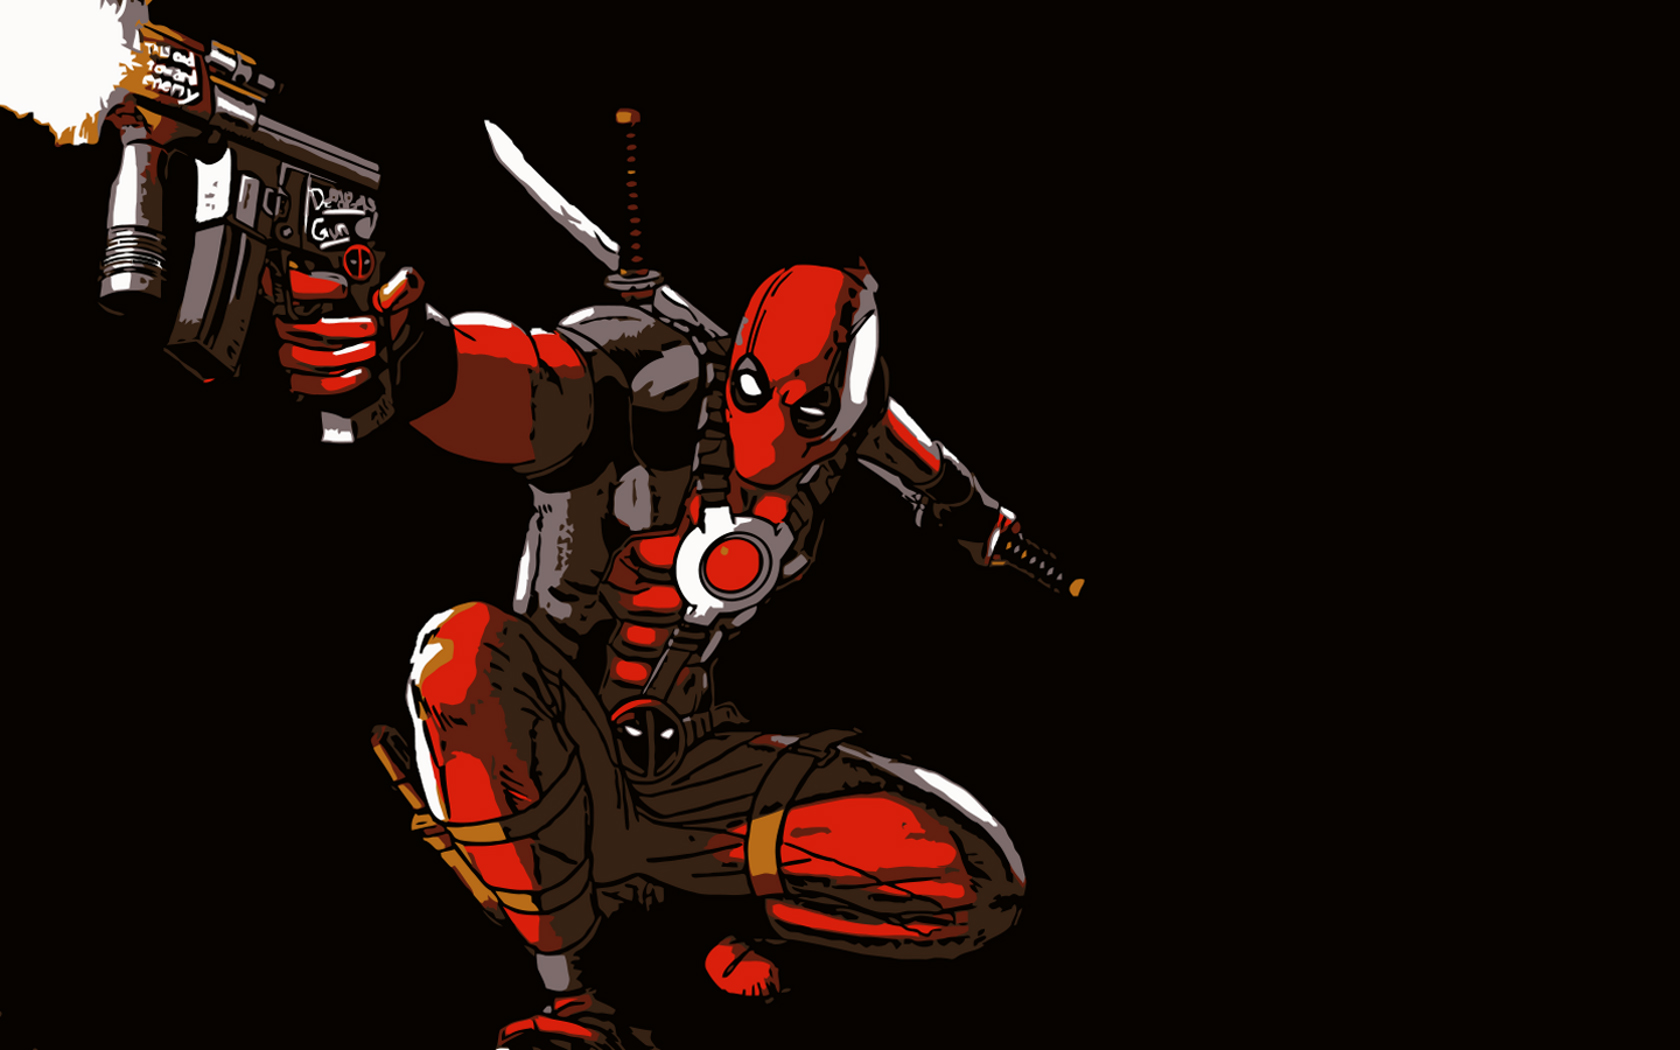 Gunning Deadpool Wallpapers Gunning Deadpool HD Wallpapers 1680x1050